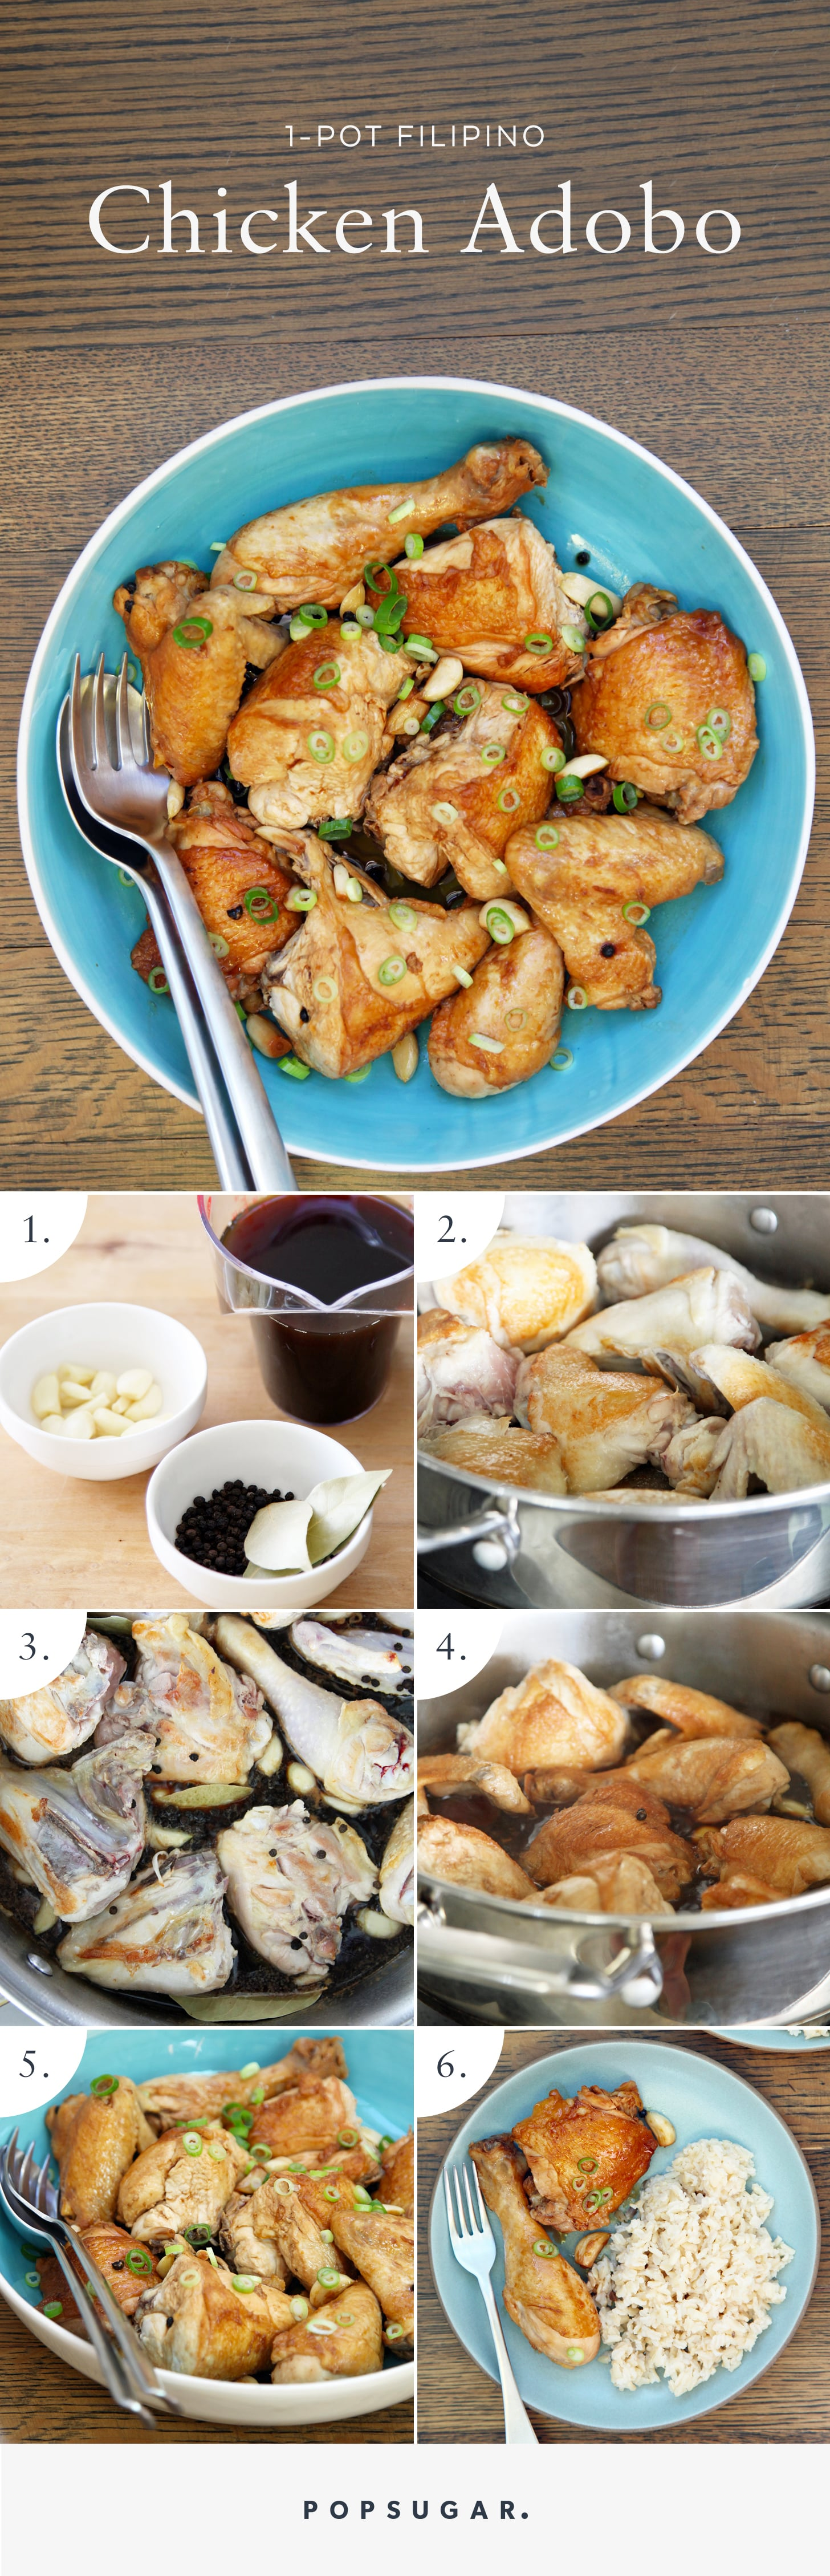 Traditional filipino chicken adobo recipe popsugar food directions forumfinder Image collections